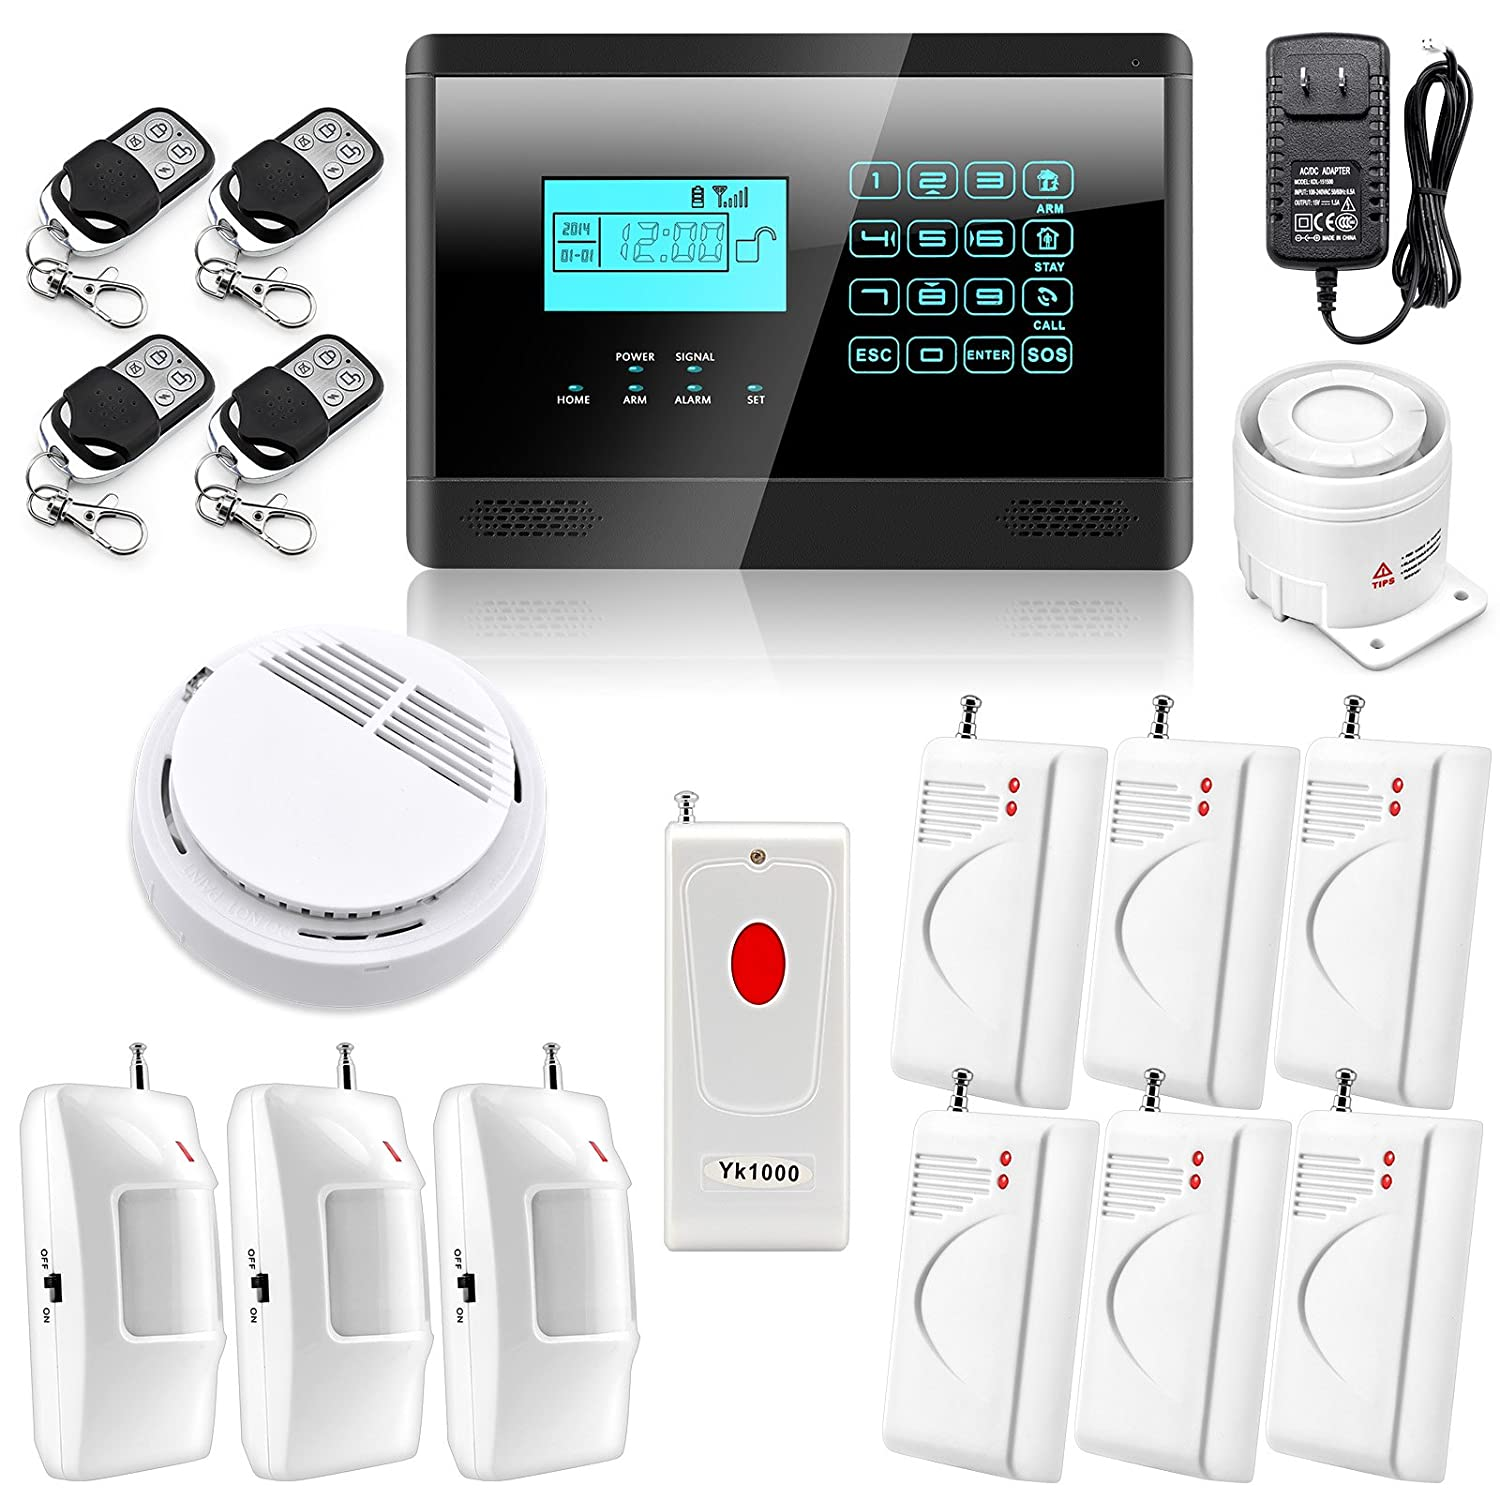 Wolf Guard Wireless Autodial Smart Home House Security Burglar Alarm System. The 50 Best Smart Home Security Systems  Top Home Automation